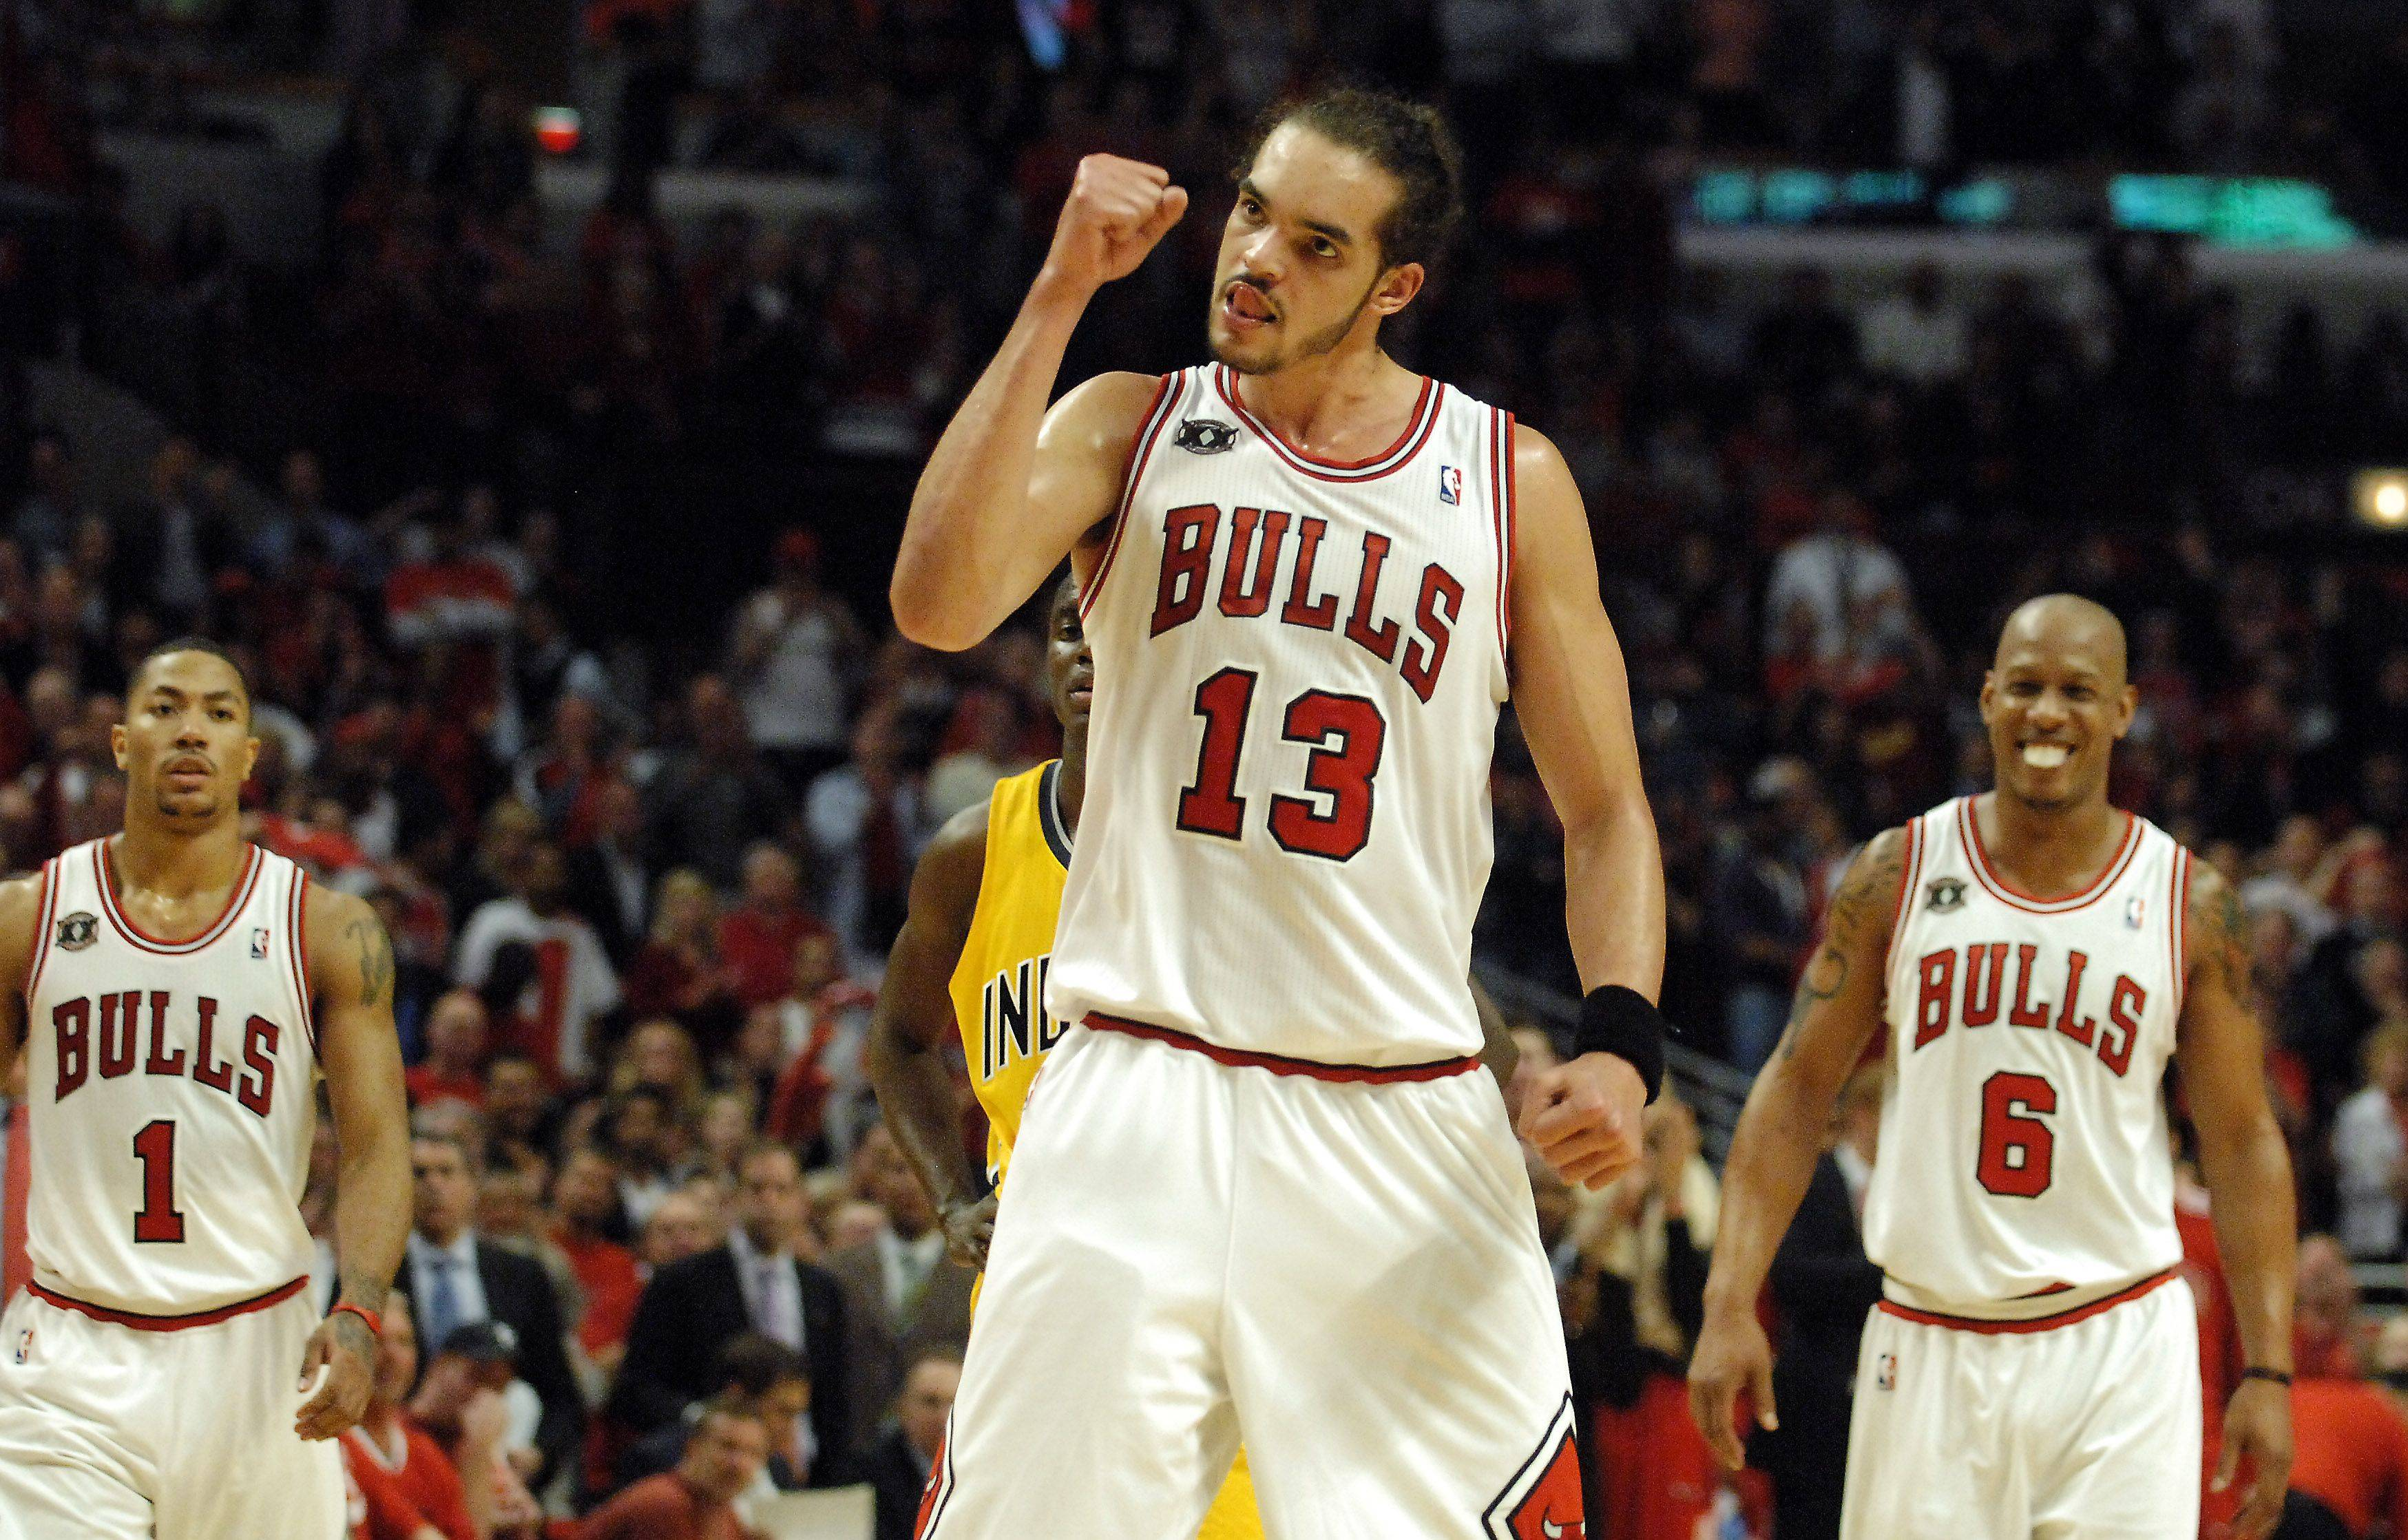 Joakim Noah gives a fist pump after sinking 2 free throws during game 5 Tuesday.